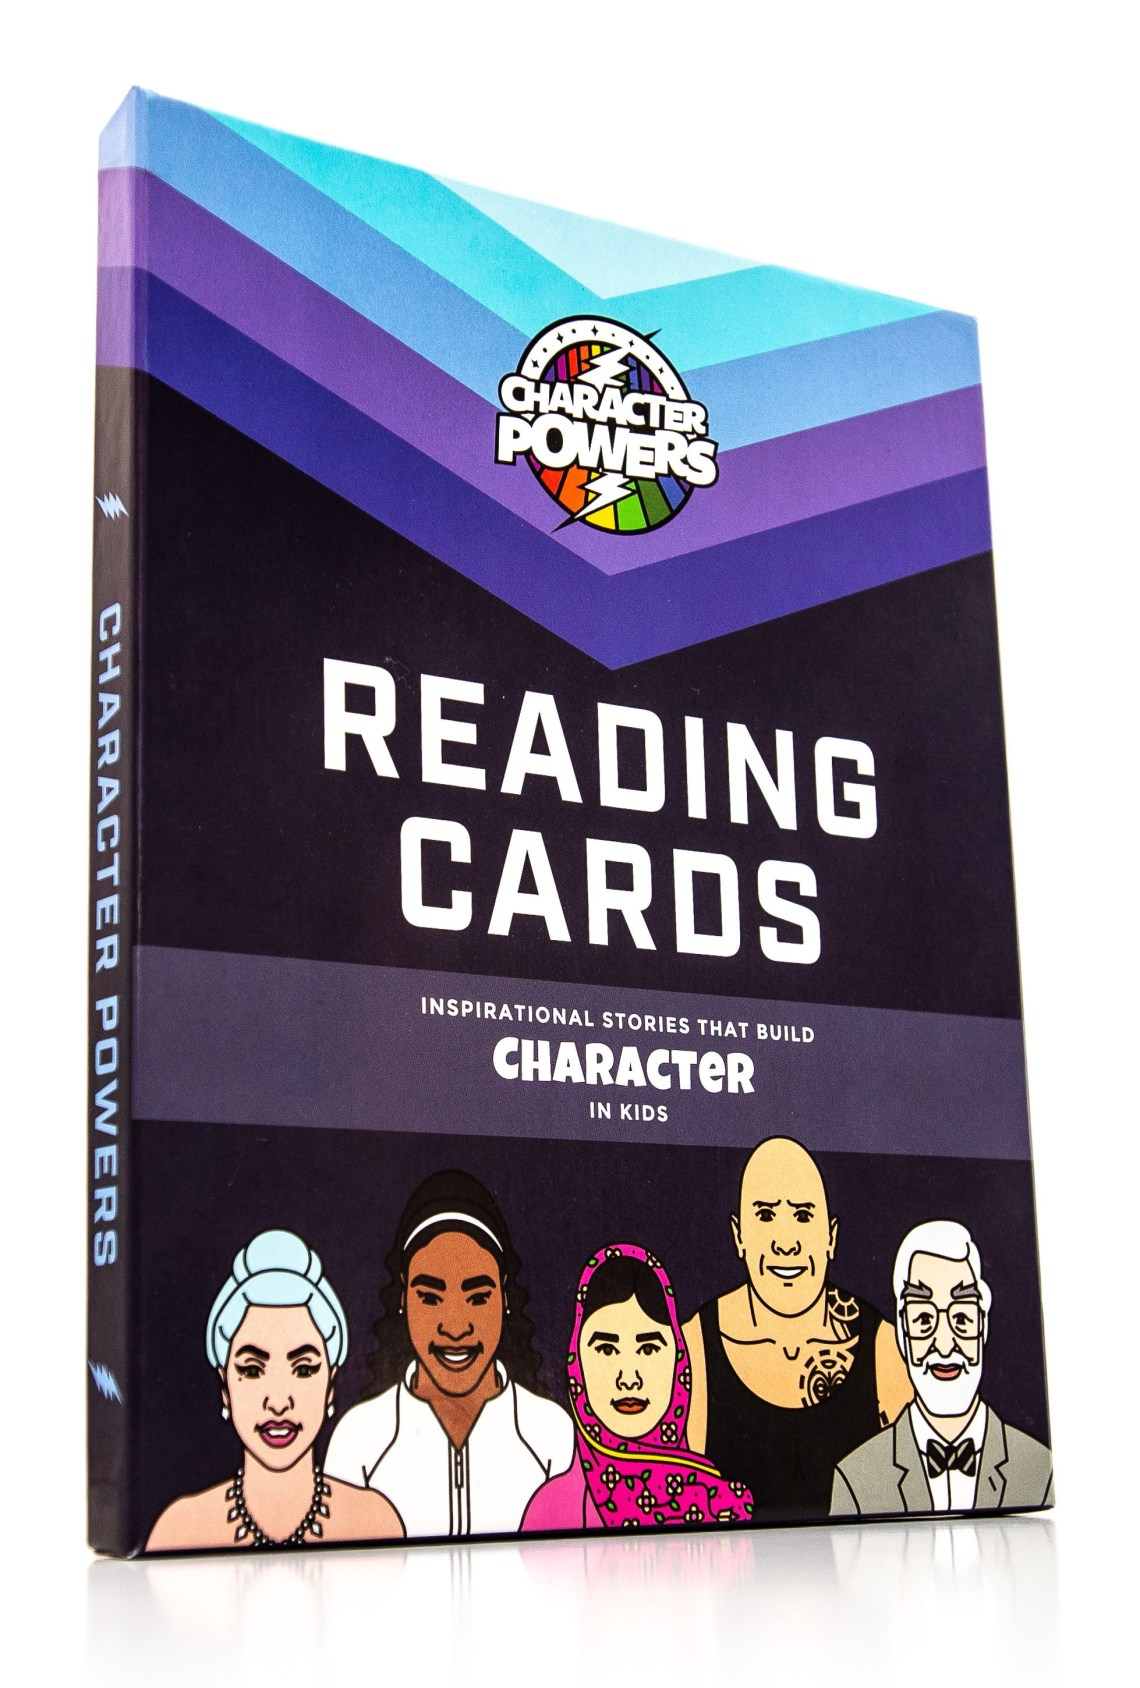 Character powers reading cards